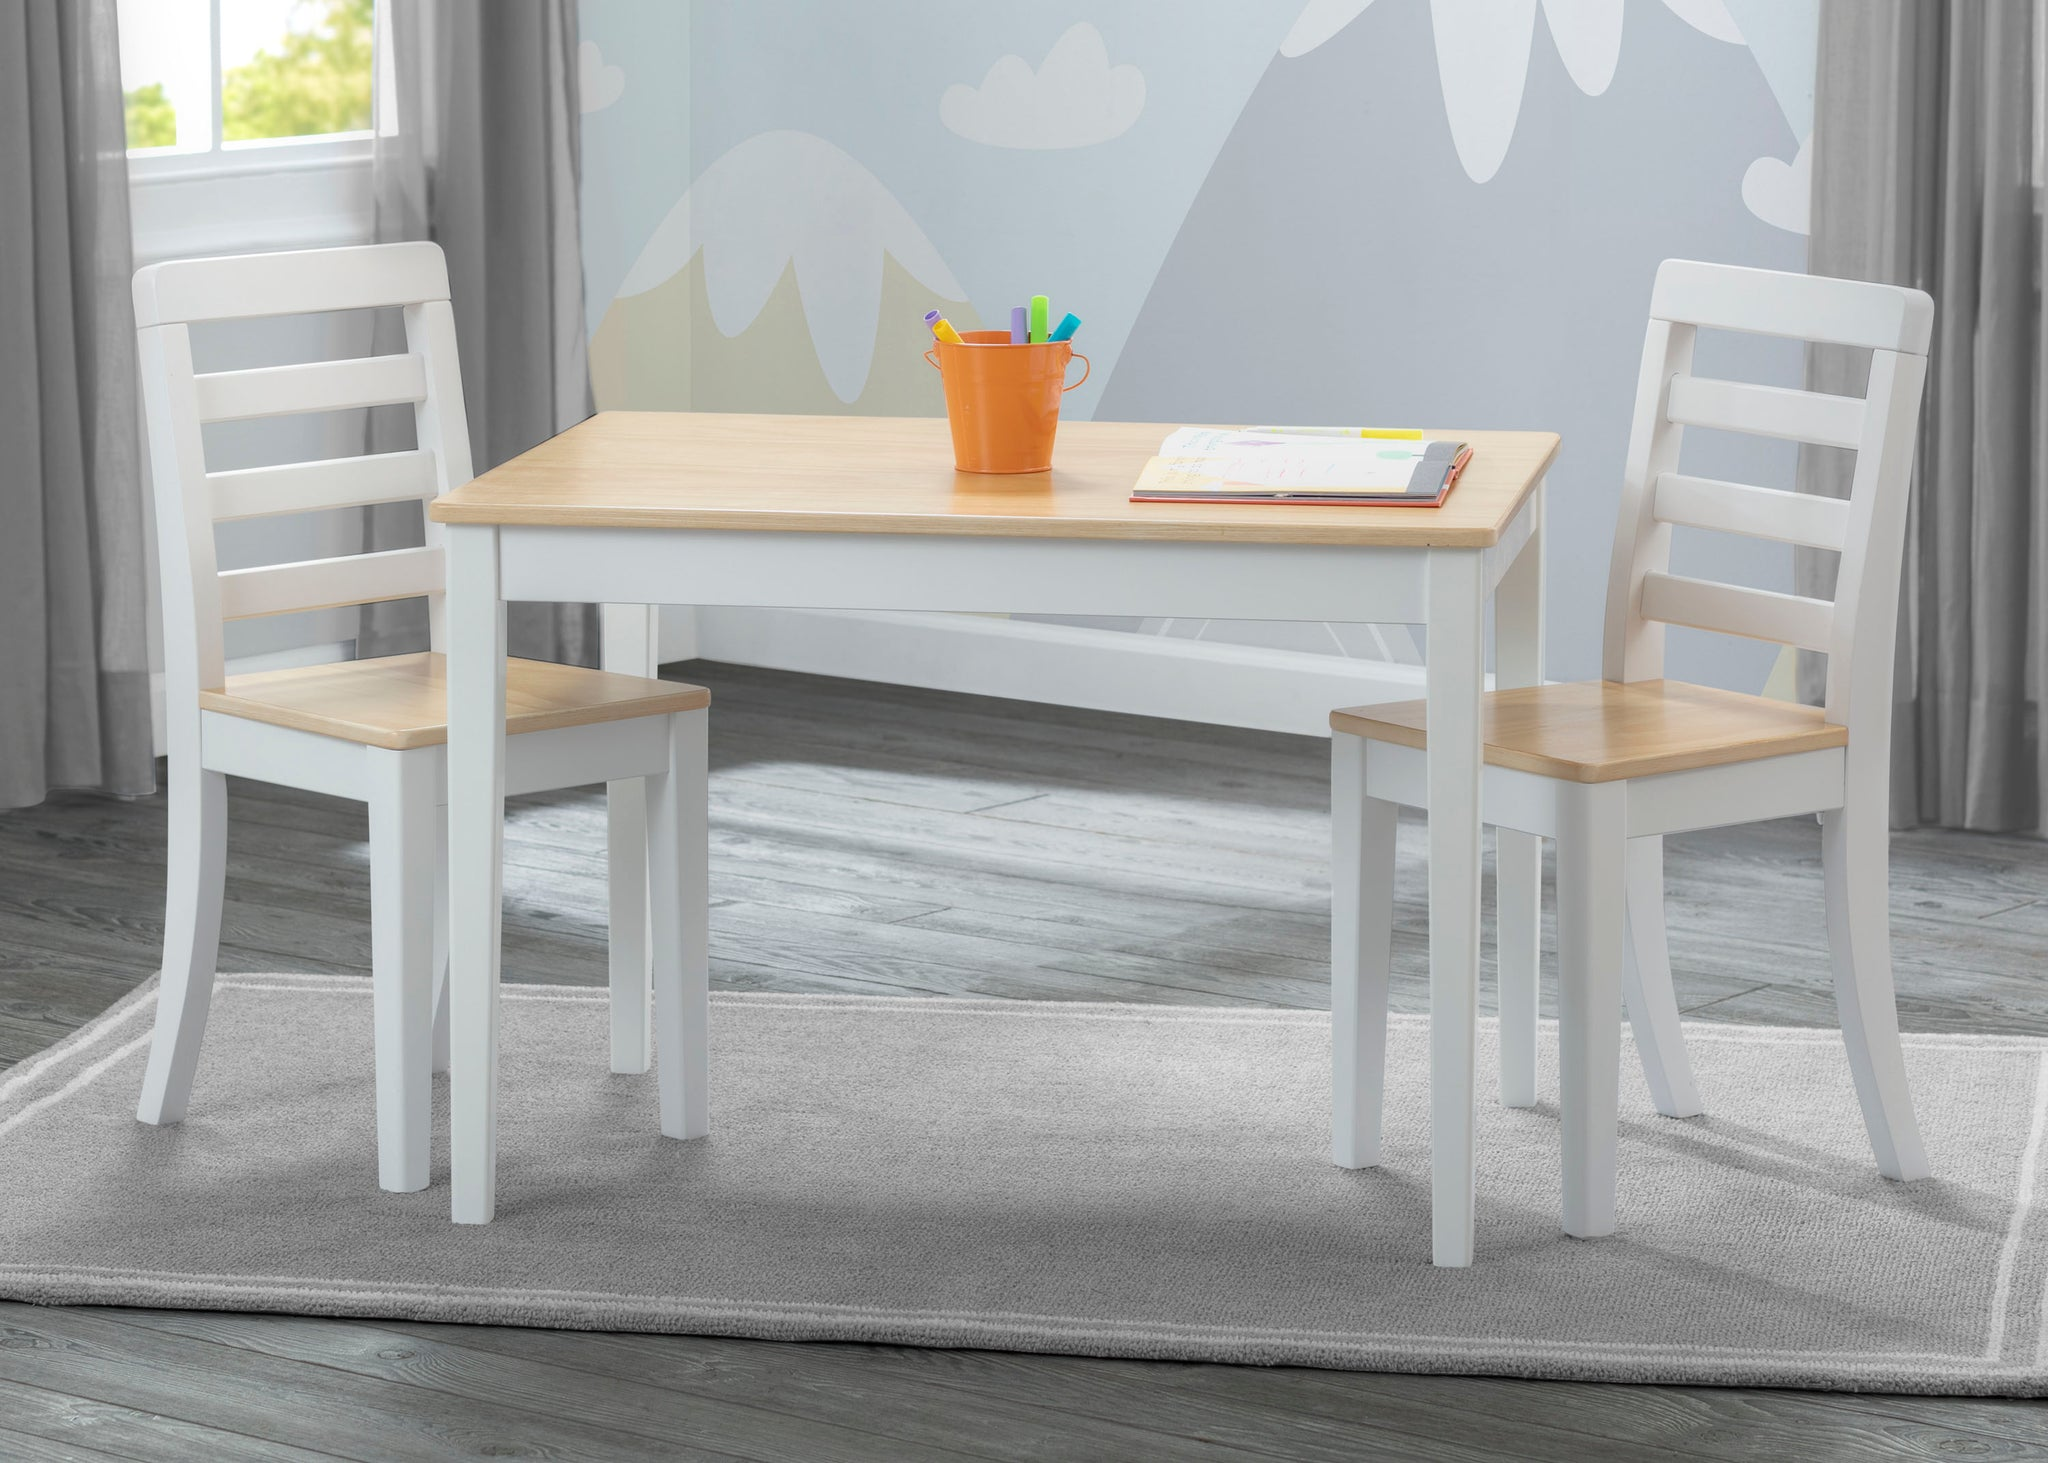 Delta Children White & Natural (196) Gateway Table & 2 Chair Set, Hangtag View